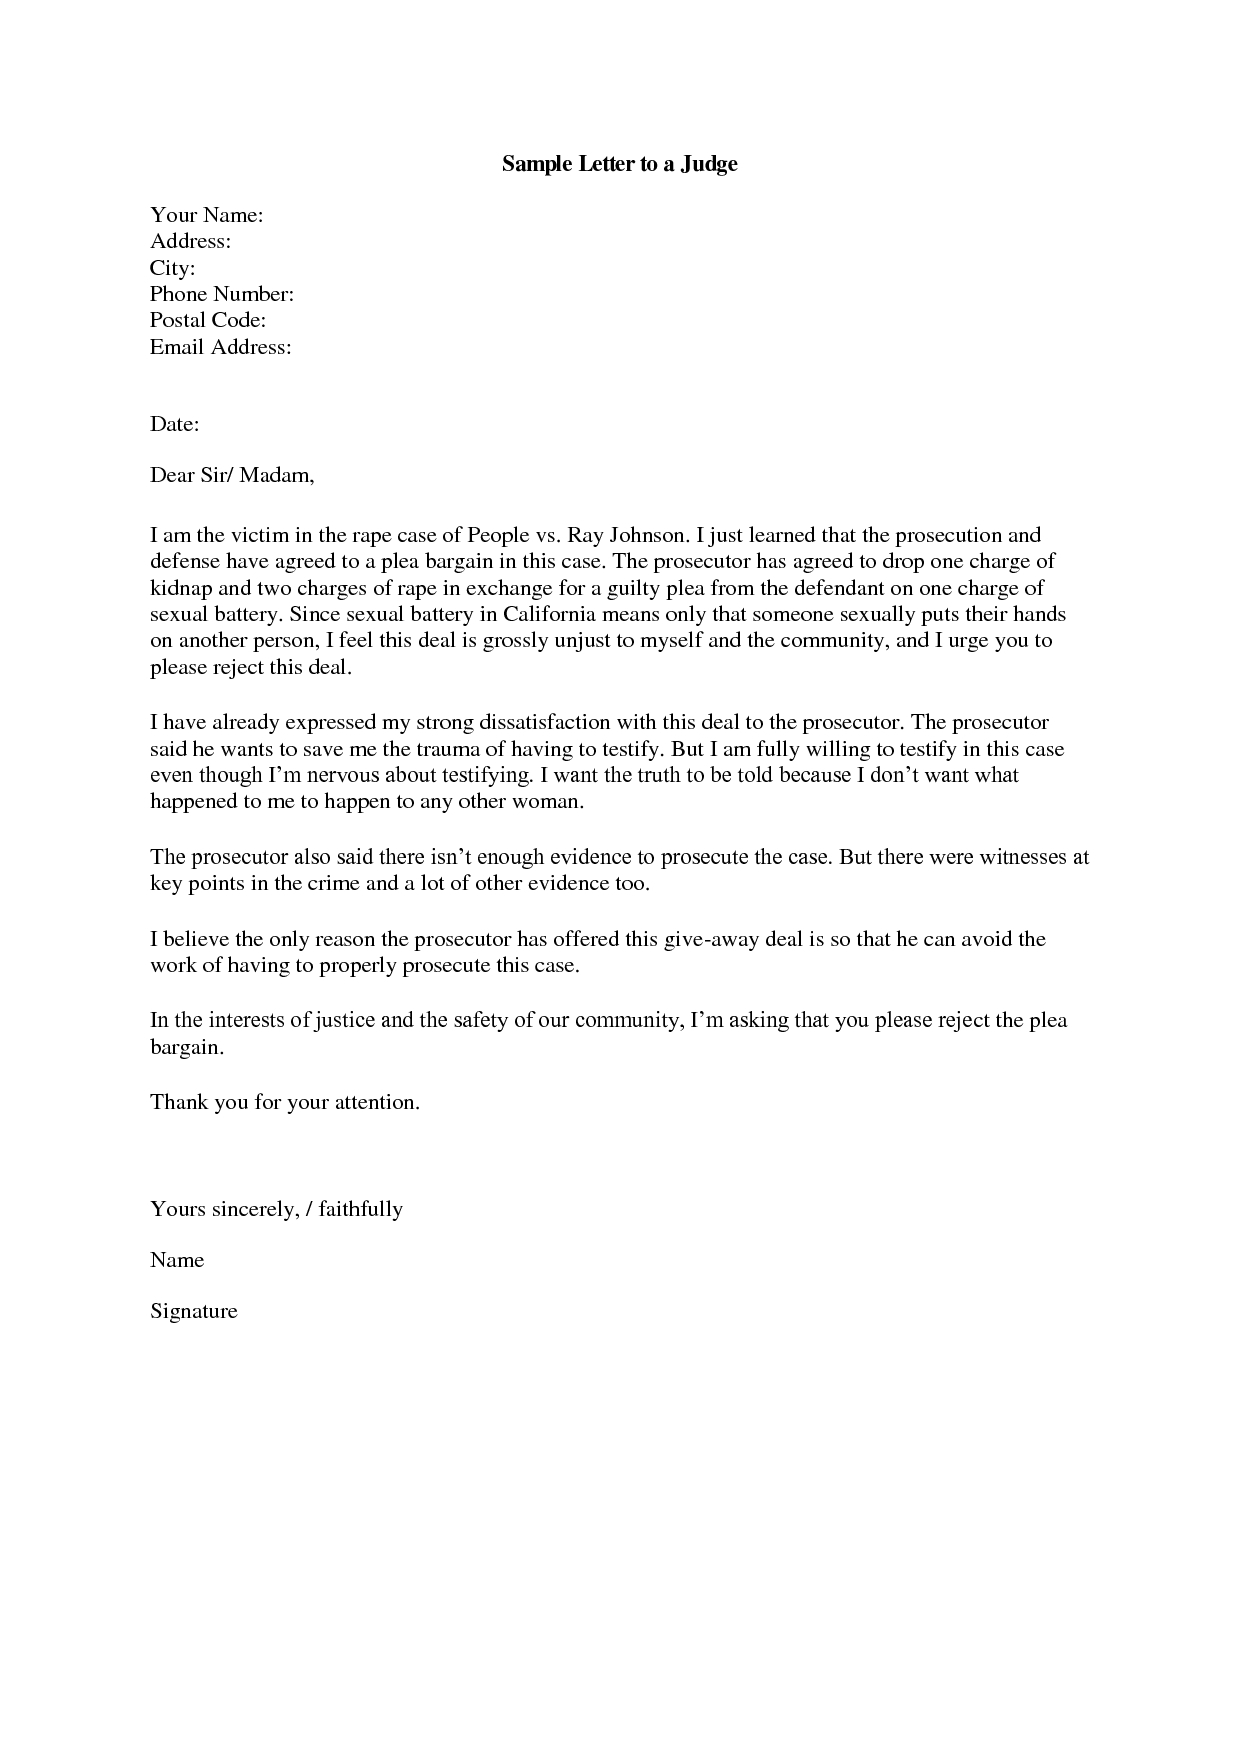 Formal Letter Format To Judge  Examples And Forms Within Letter To A Judge Template